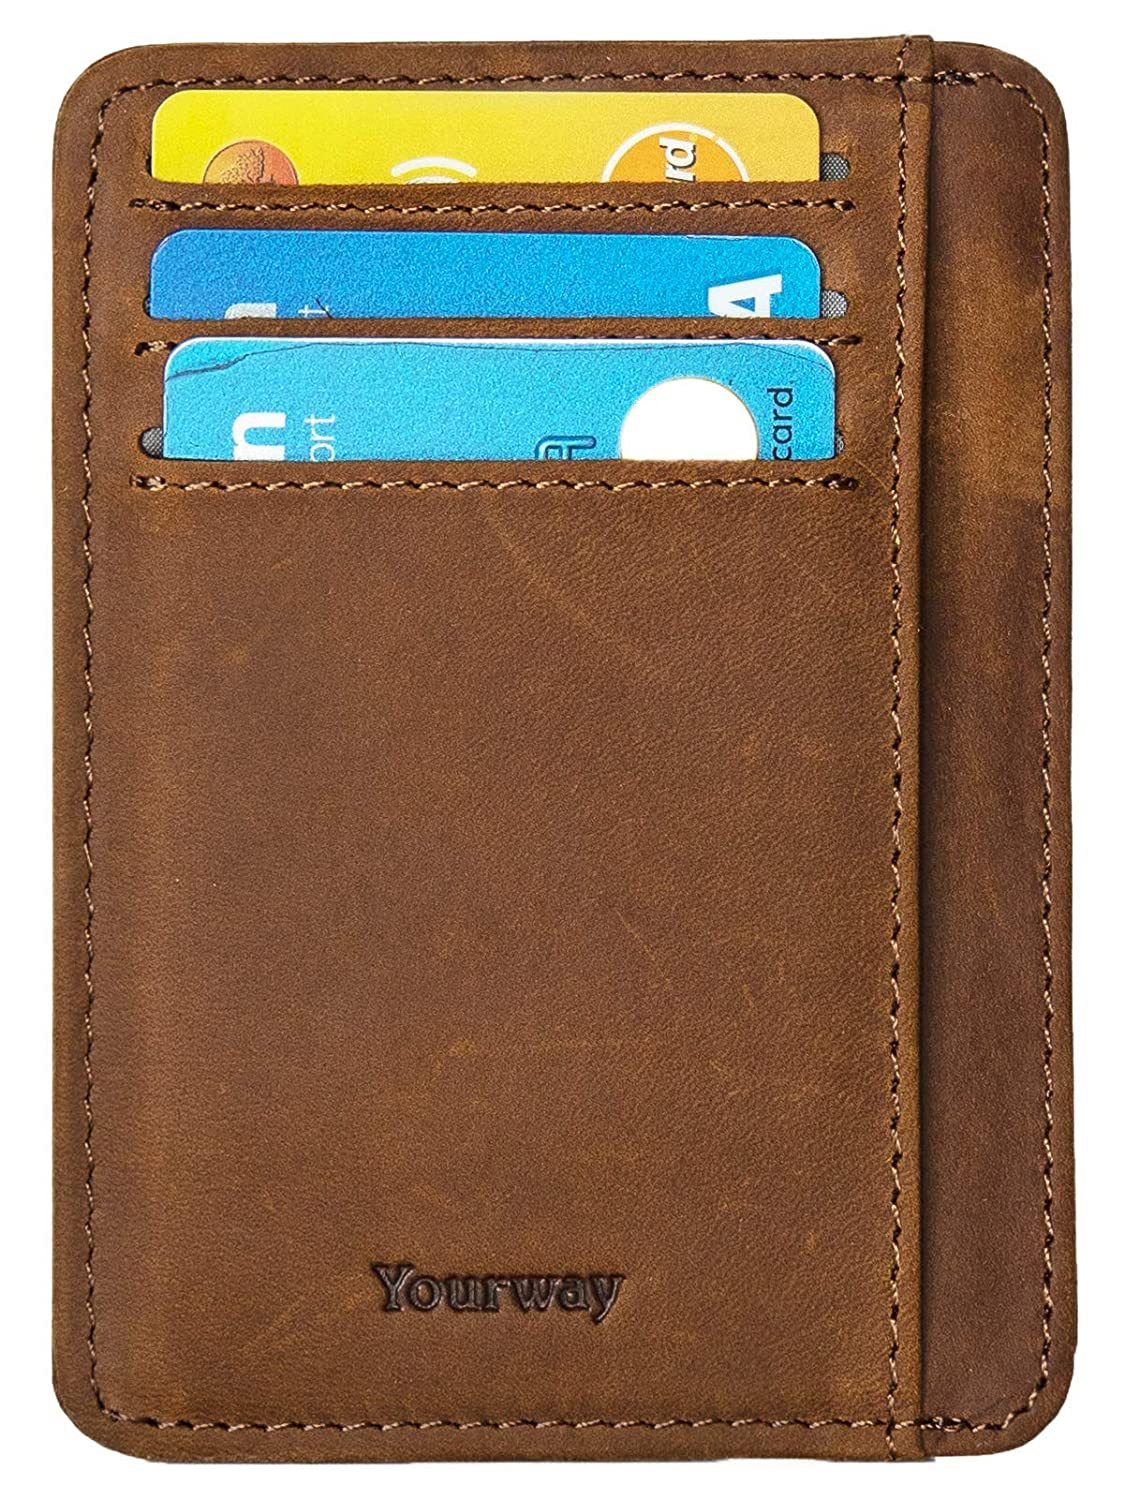 Yourway Sweden – Ultra Slim Mens Wallet with RFID Blocking | Credit Card Holder | Travel Wallet | Minimalist Mini Bifold Wallet for Men with Gift Box